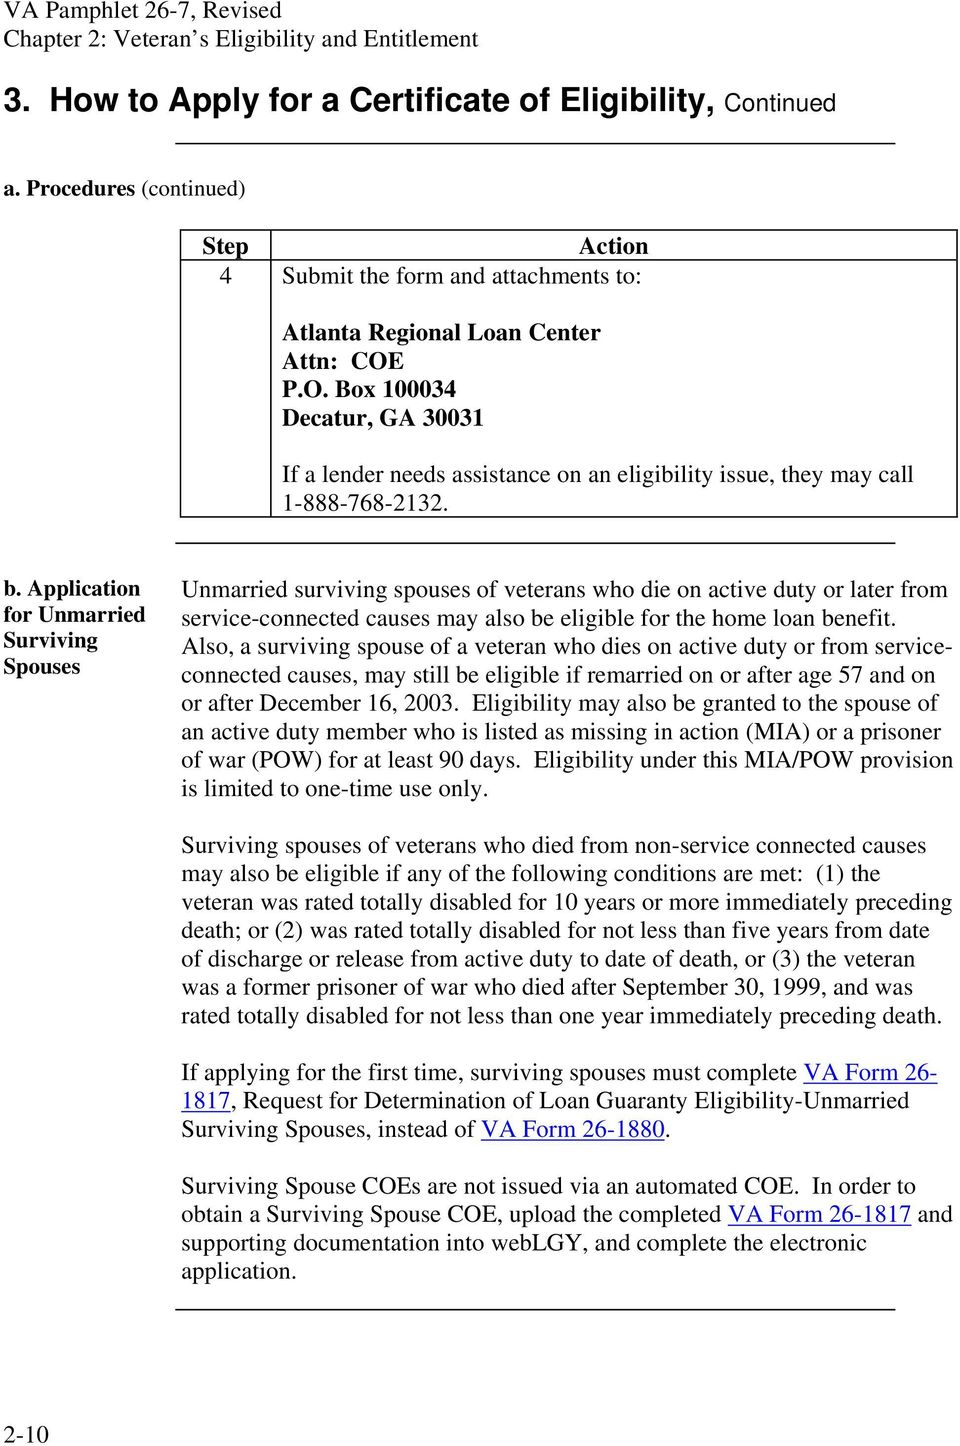 Application for Unmarried Surviving Spouses Unmarried surviving spouses of veterans who die on active duty or later from service-connected causes may also be eligible for the home loan benefit.